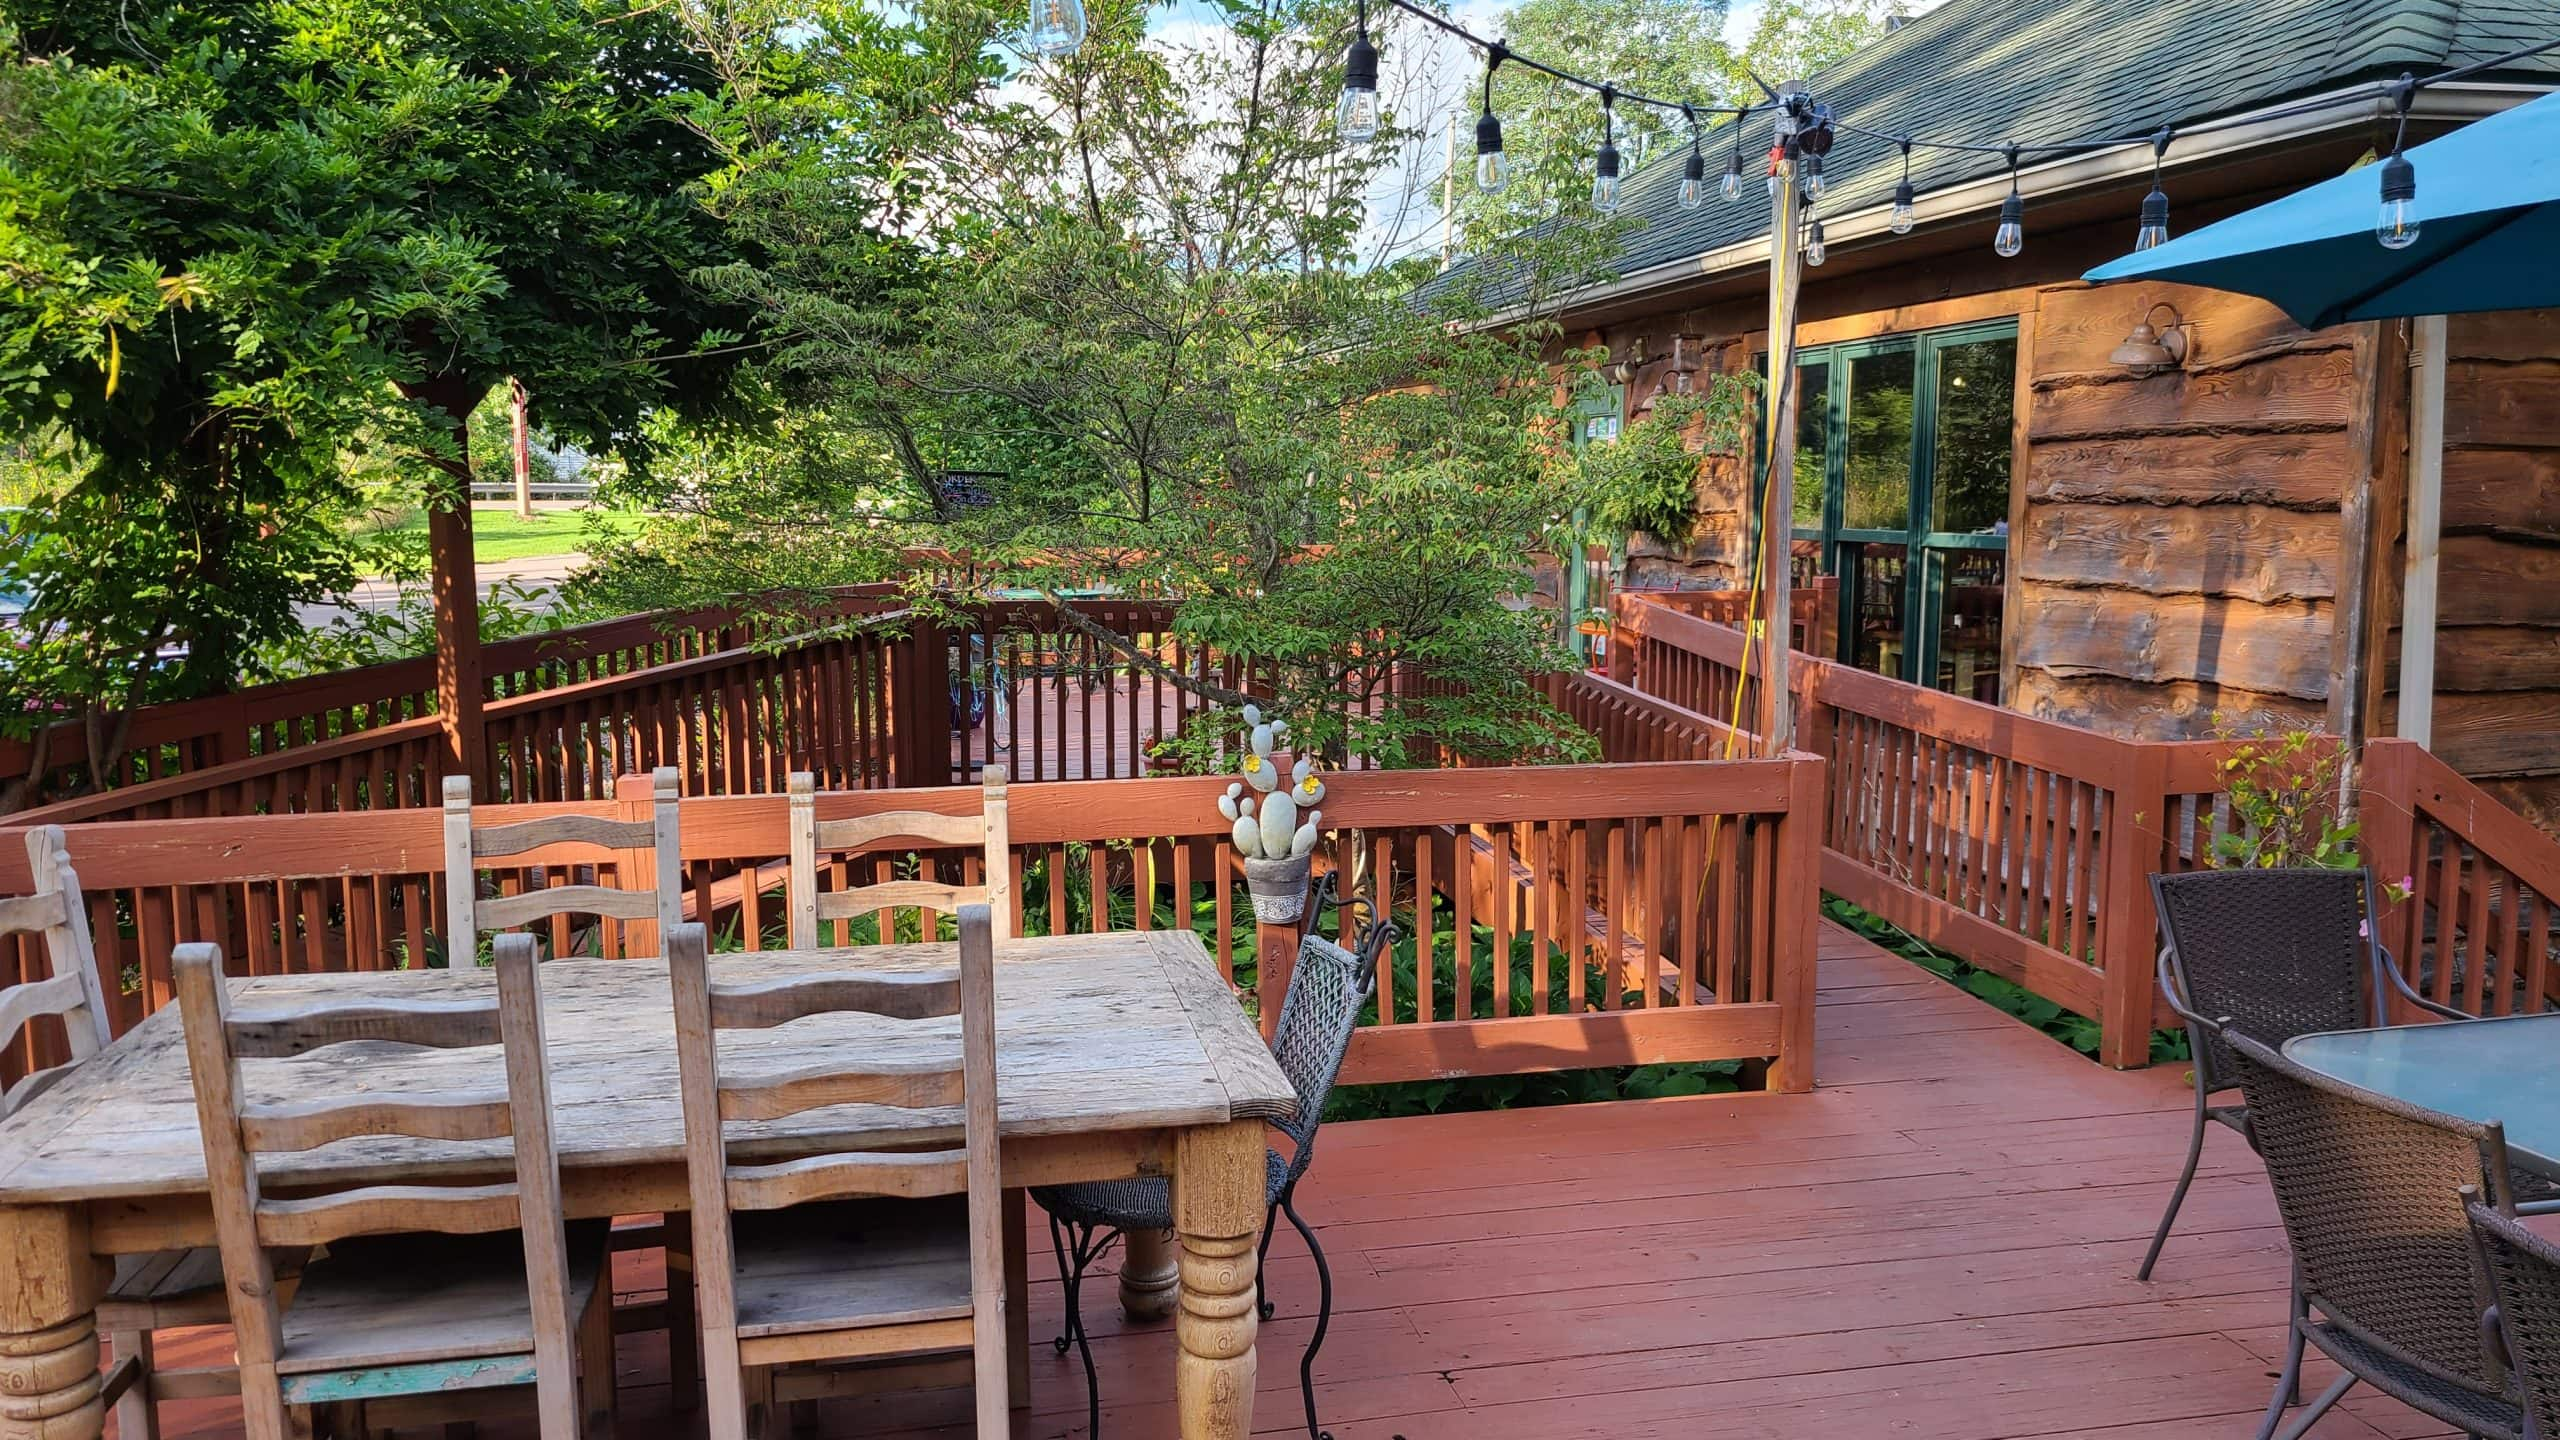 The Lucky Dog Cafe's outdoor seating area. Several tables sit on a wooden deck. Decorative lights hang above.